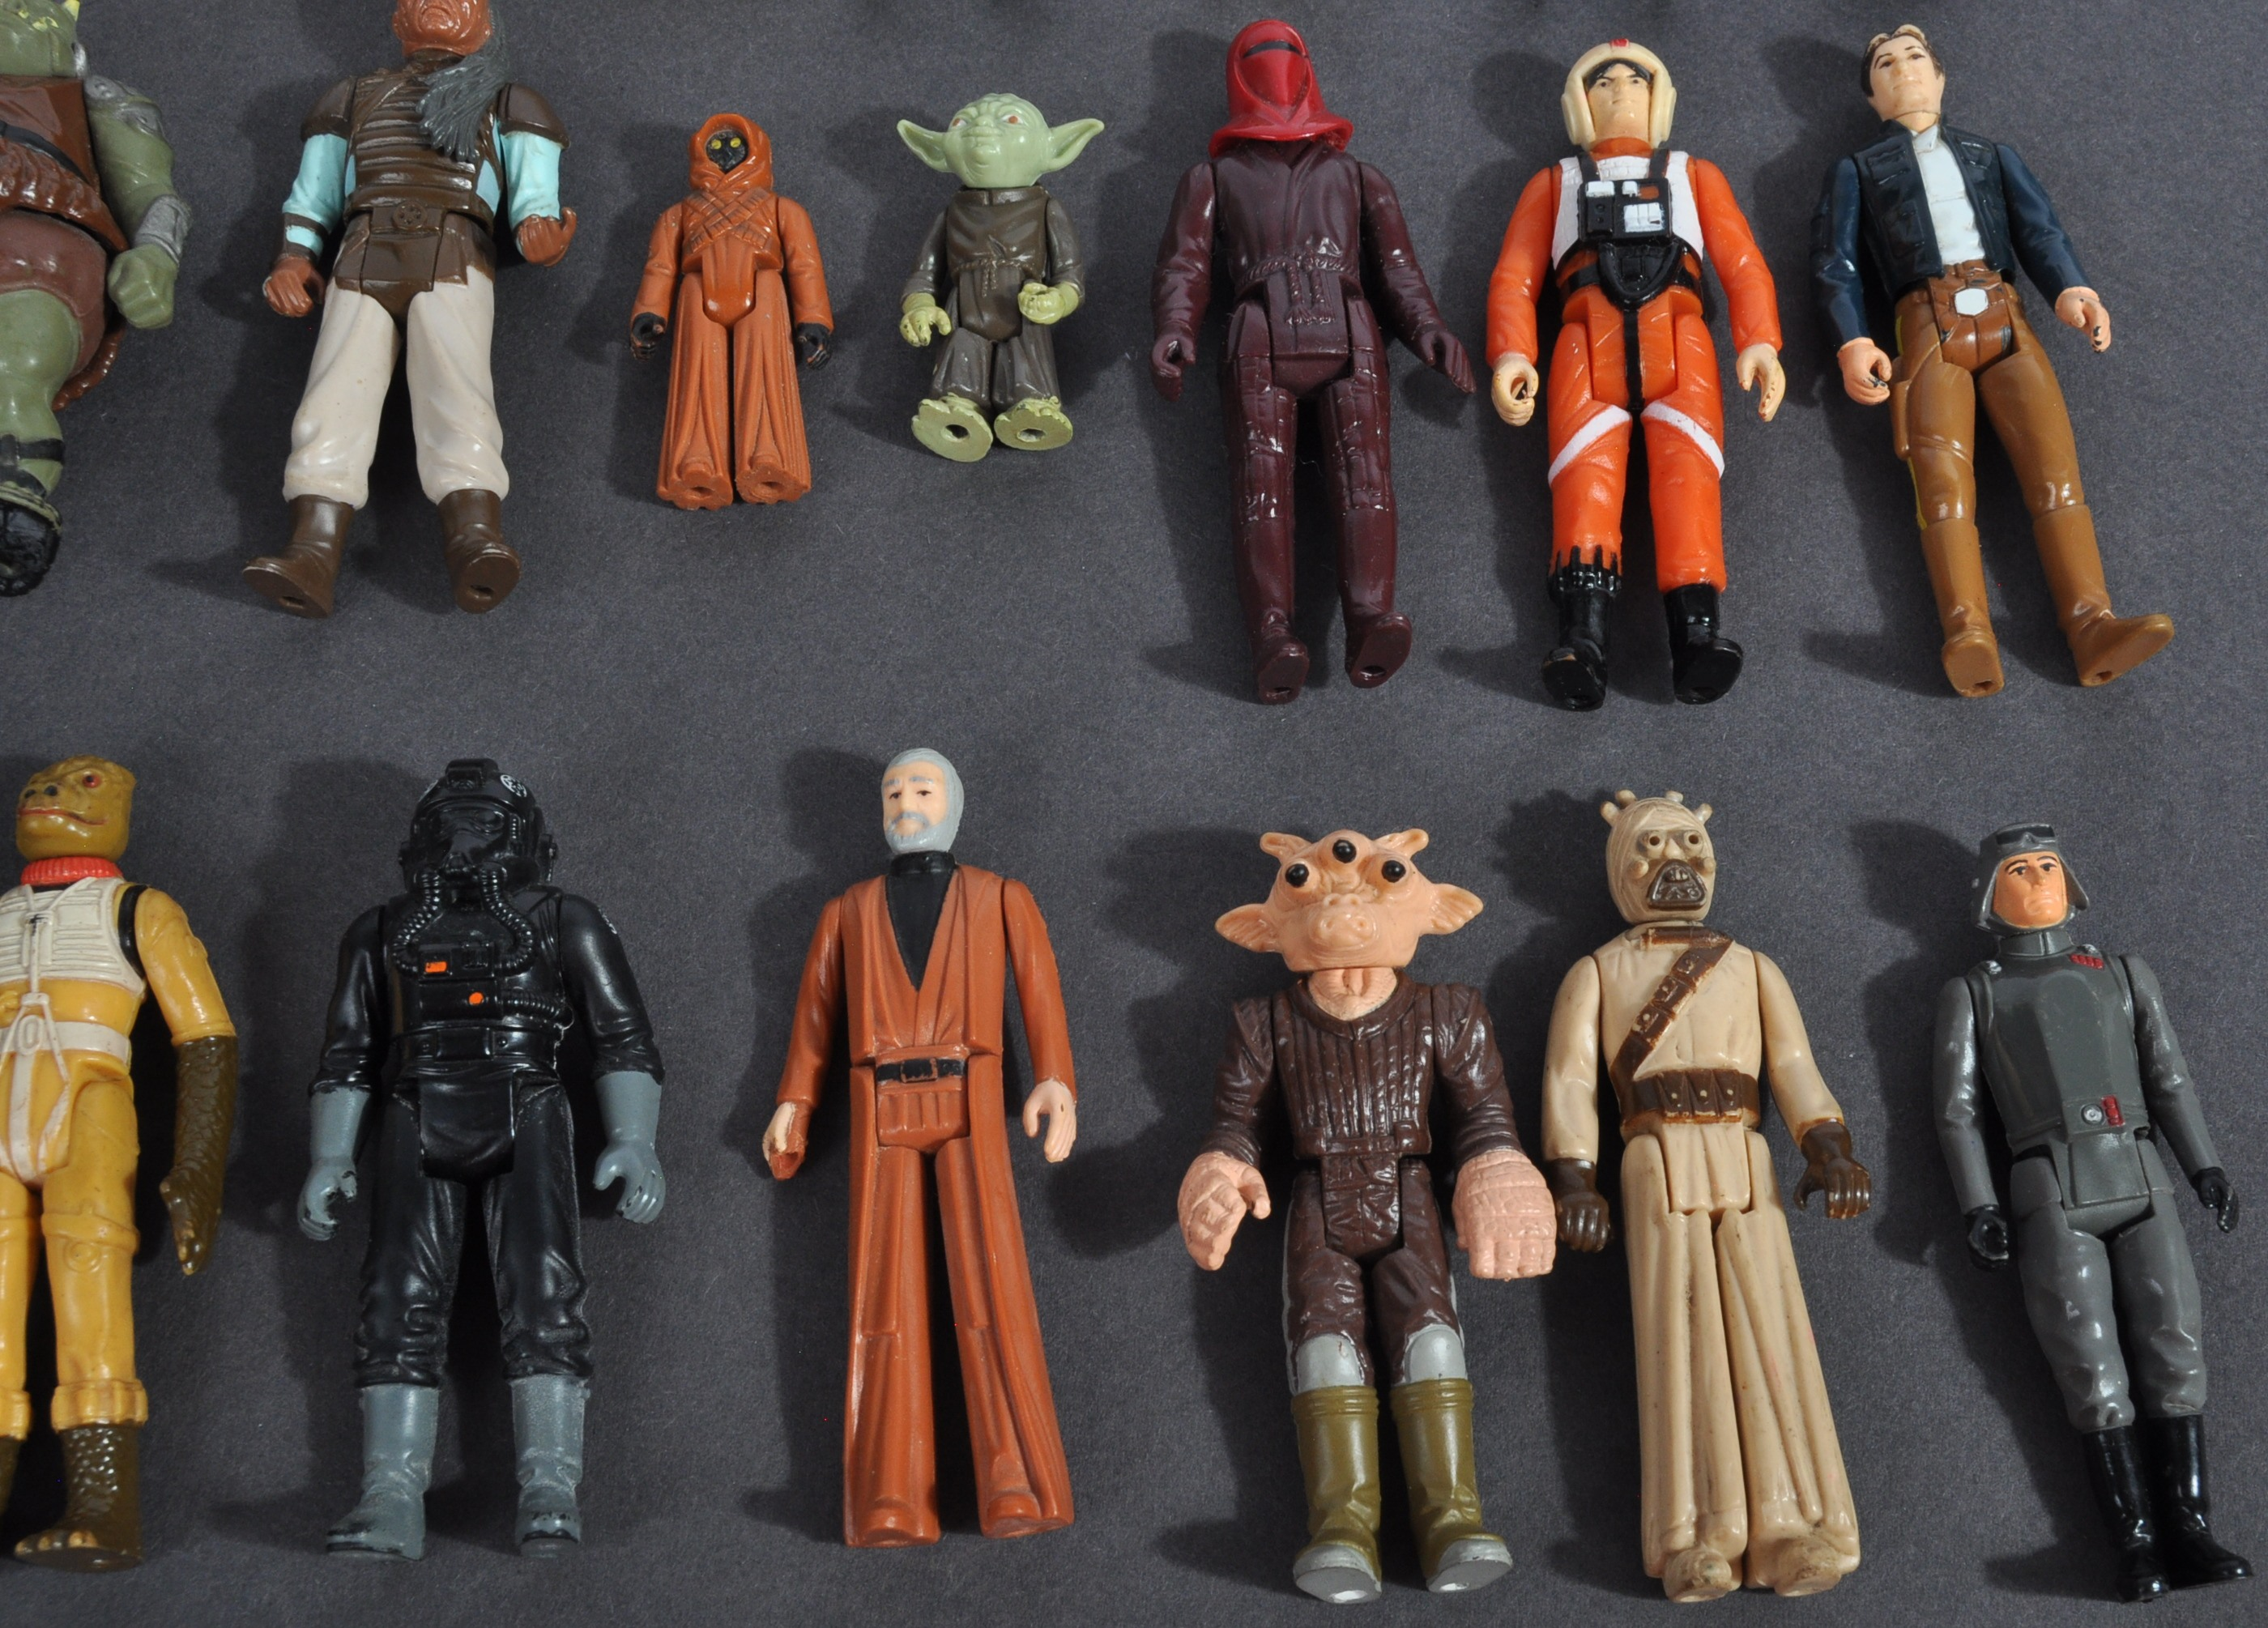 STAR WARS - COLLECTION OF VINTAGE KENNER / PALITOY ACTION FIGURES - Image 7 of 7